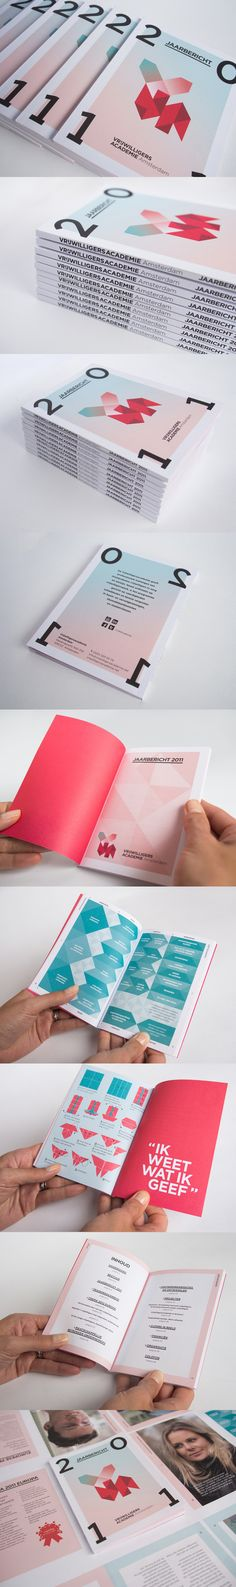 vrijwilligersacademie amsterdam 2011 annual report: by da costa design